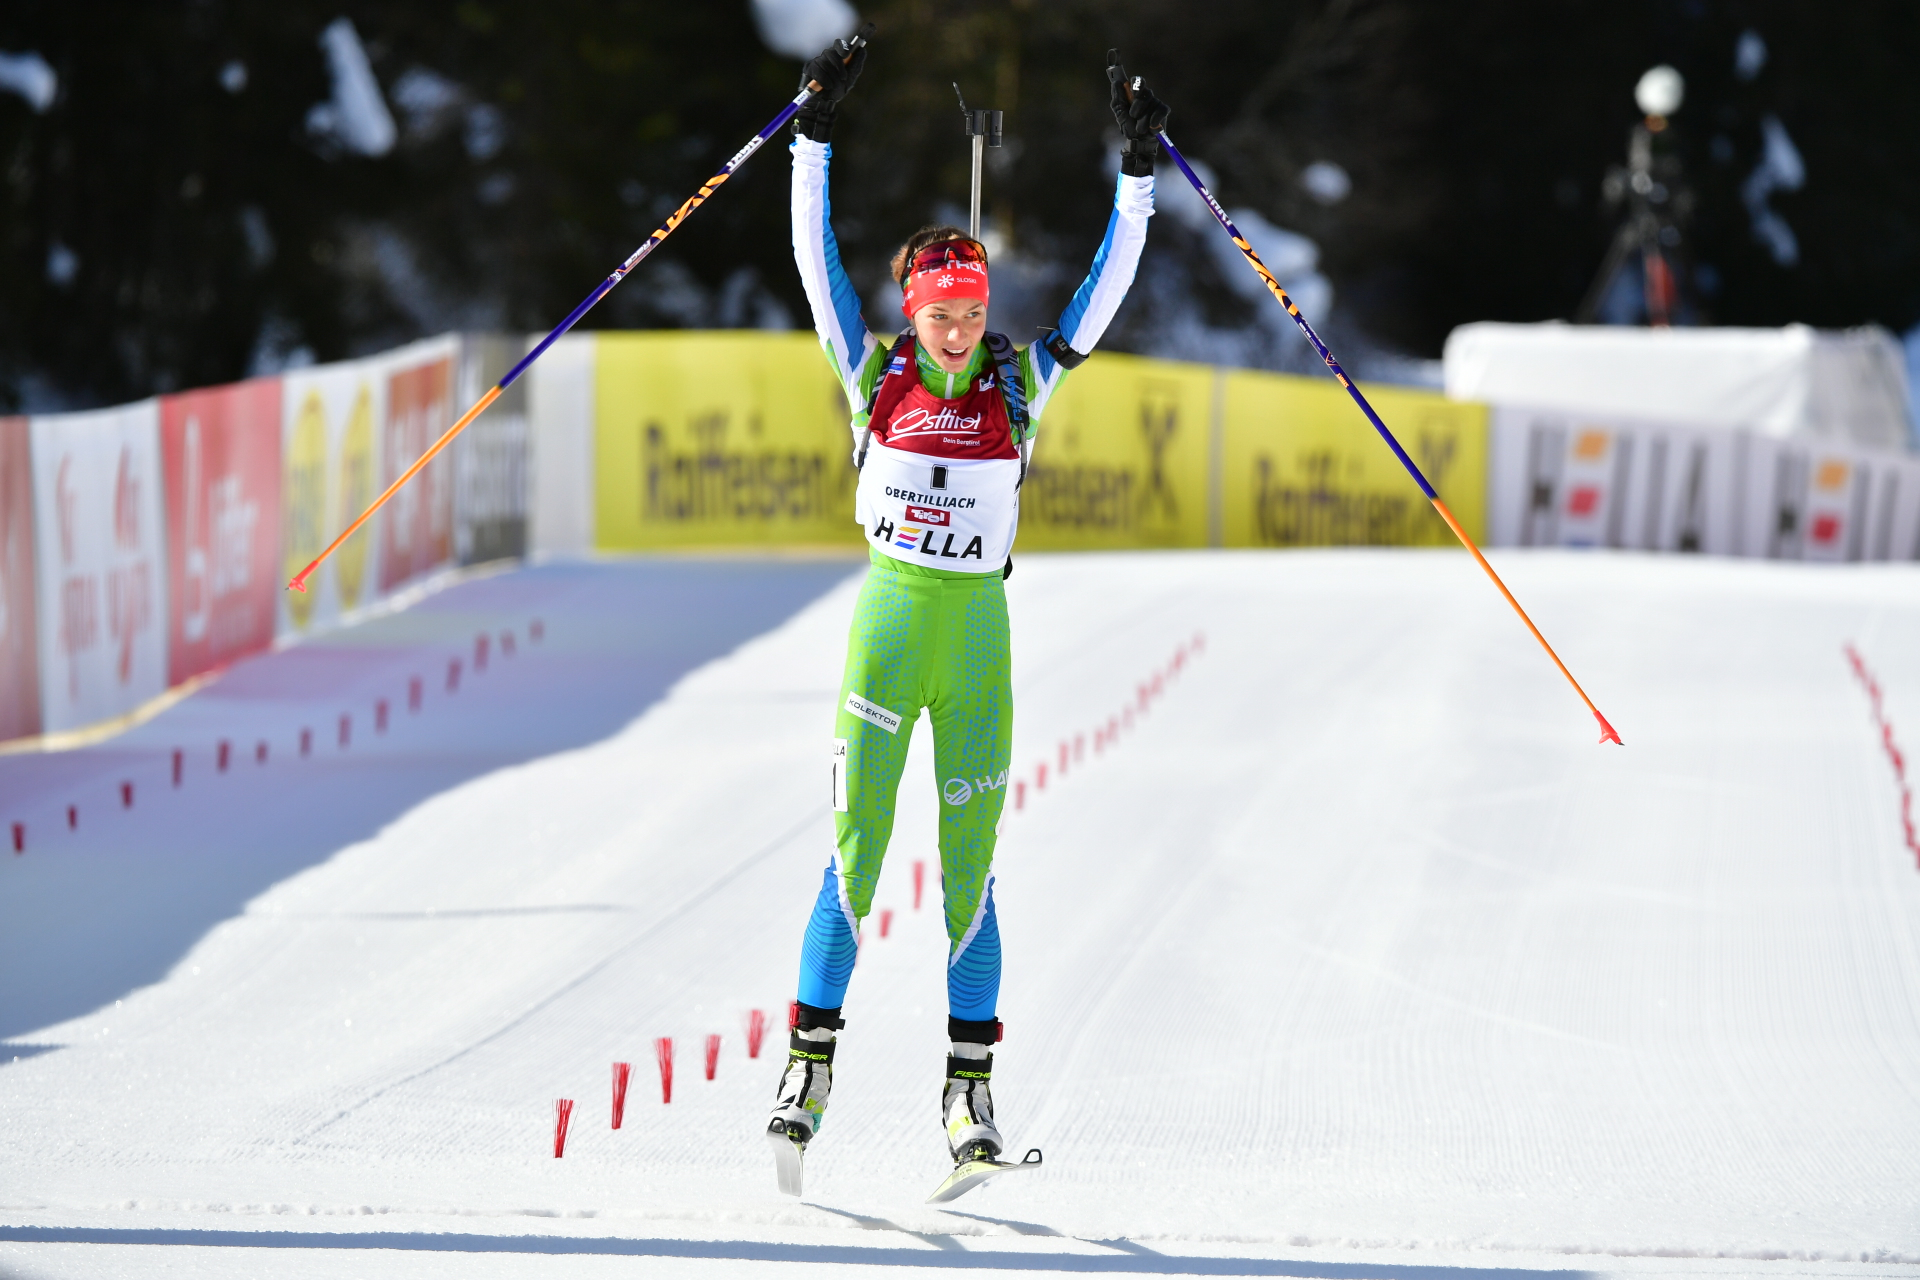 REPINC Lena biathlon Obertilliach 2021